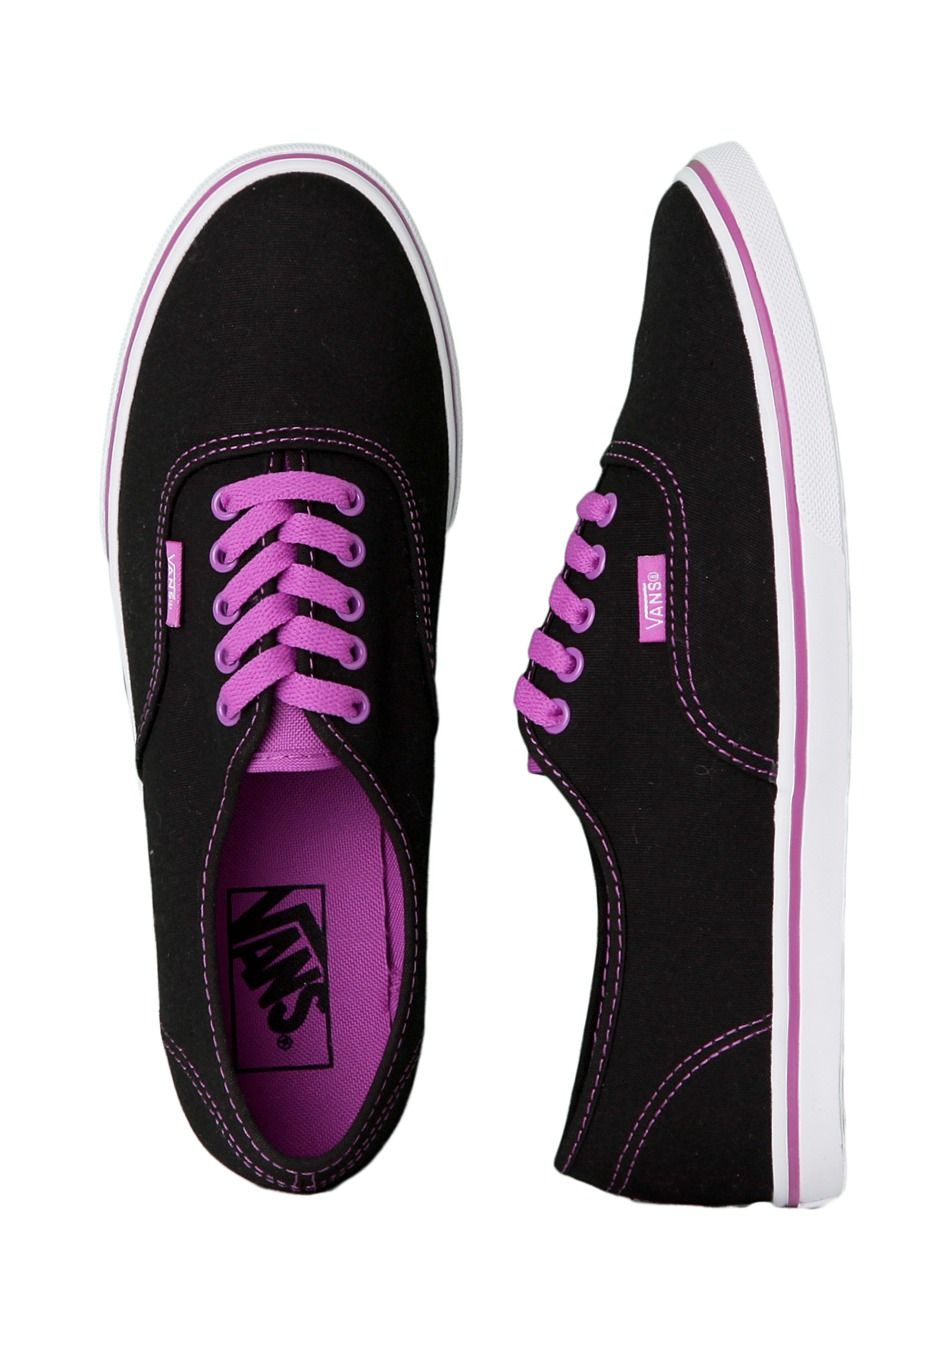 Vans Running Shoes For Girls